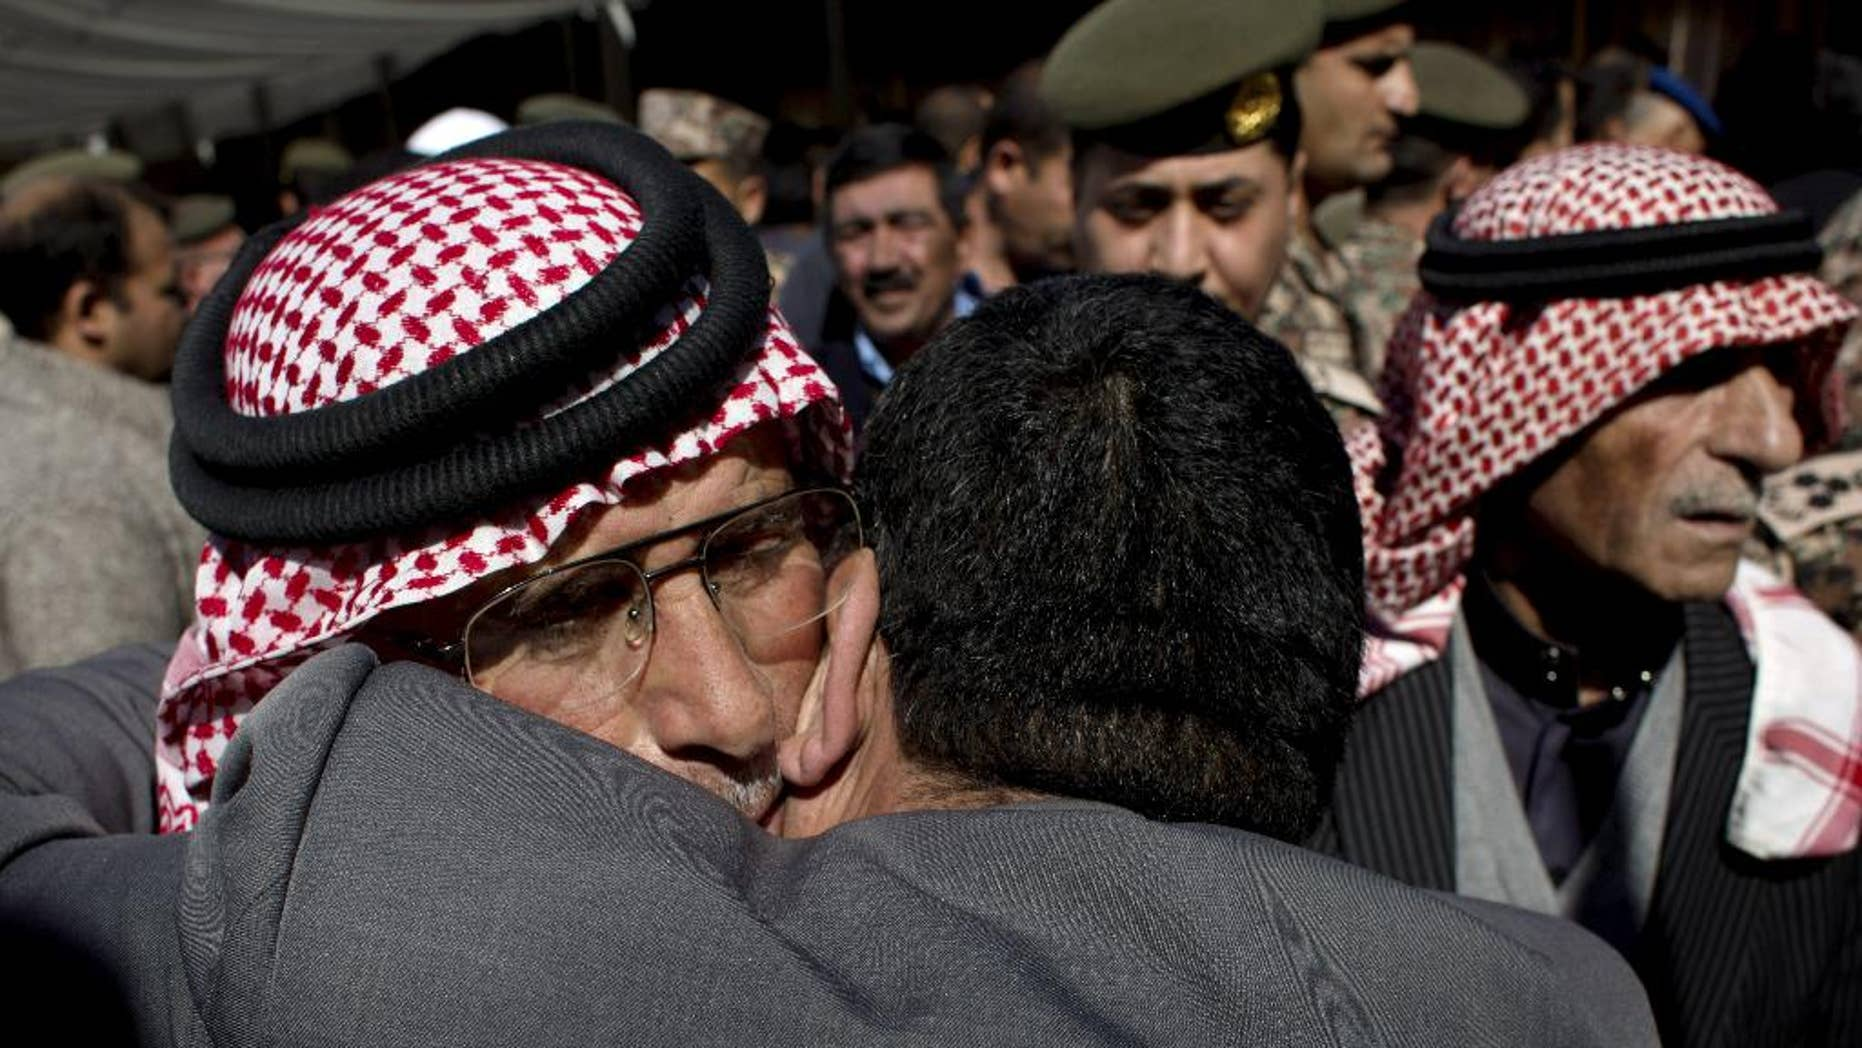 Safi al-Kaseasbeh, left, father of slain Jordanian pilot, Lt. Muath al-Kaseasbeh receives condolences at the Kaseasbeh tribe's gathering divan at their home village of Ai, near Karak, Jordan, Wednesday, Feb. 4, 2015. Outrage and condemnation poured across the Middle East on Wednesday as horrified people learned of the video purportedly showing the Islamic State group burn a Jordanian pilot to death. (AP Photo/Nasser Nasser)